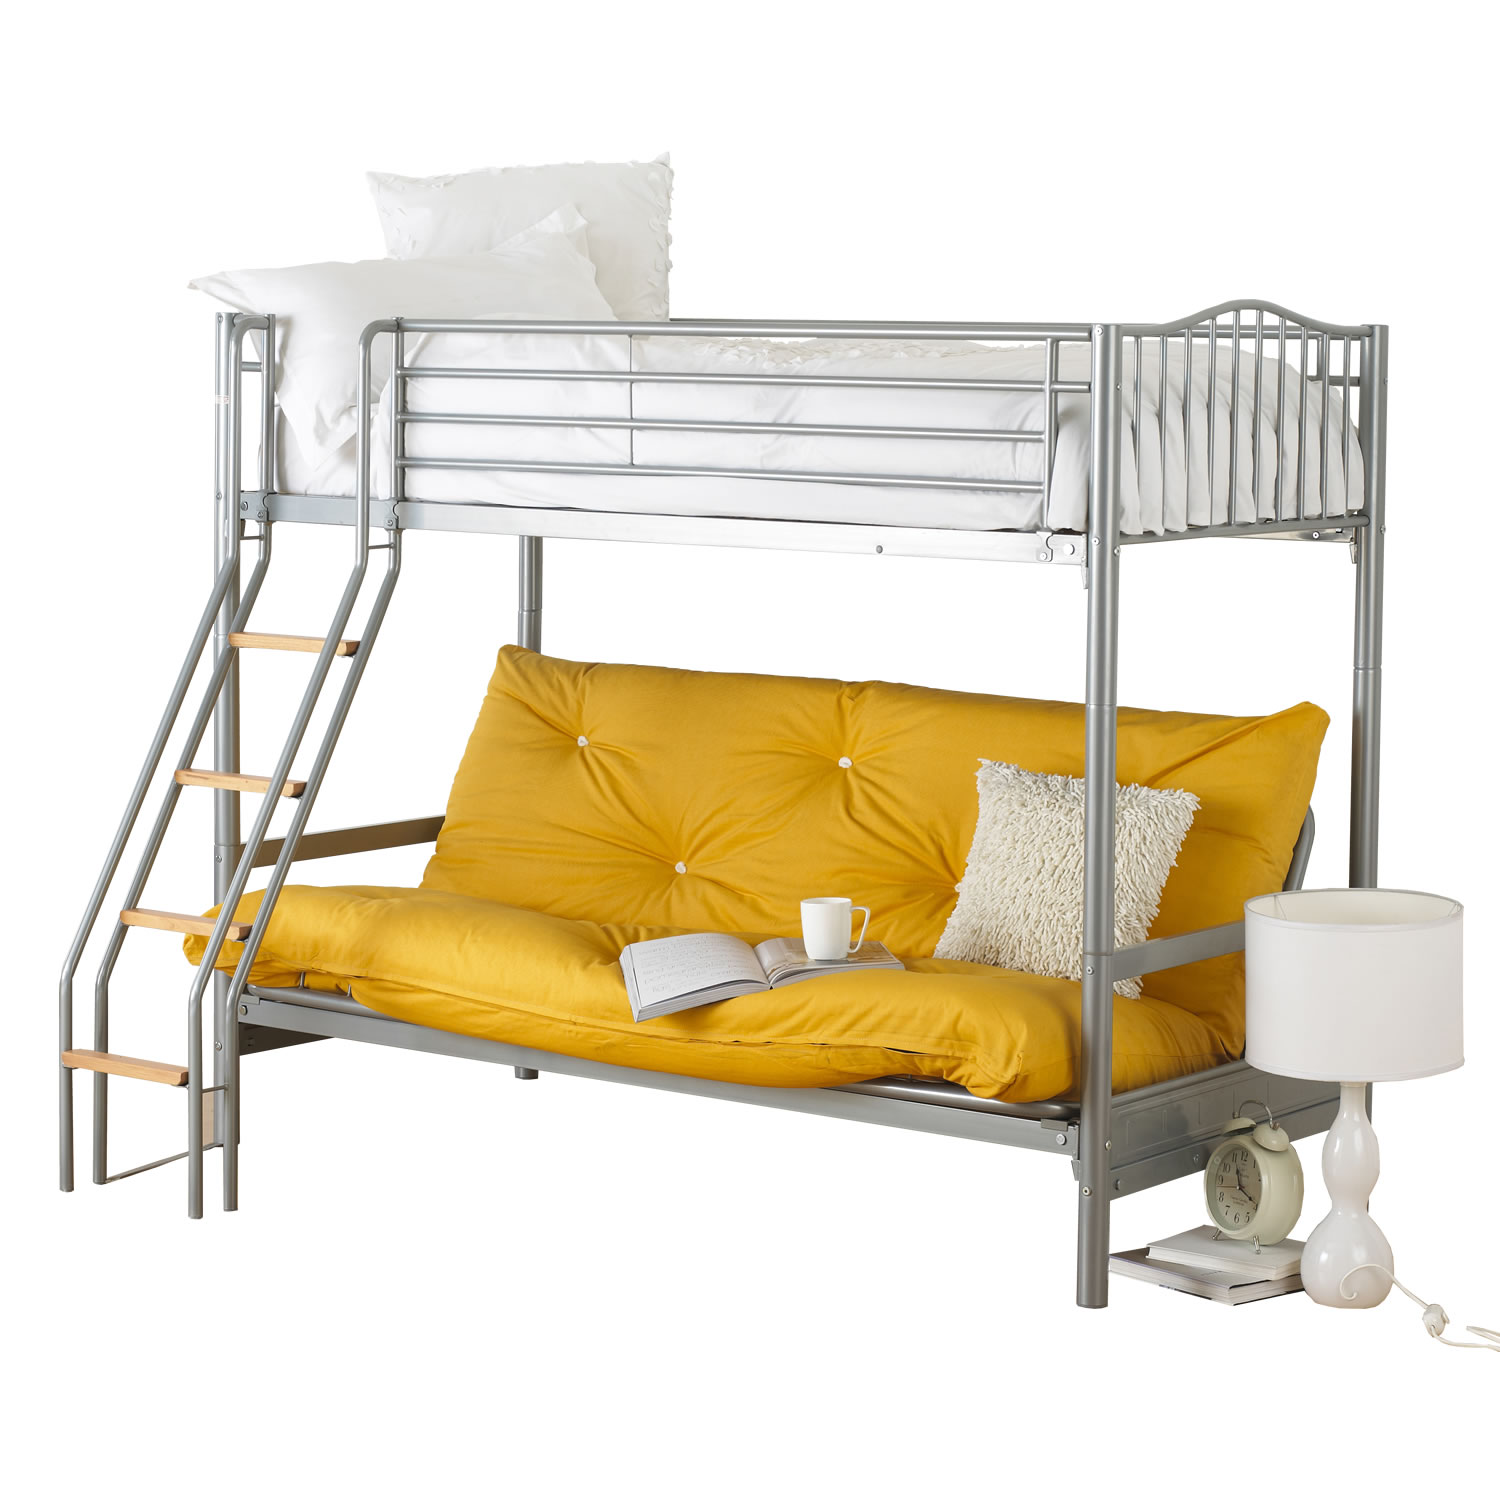 Image of: Futon Bunk Beds Design